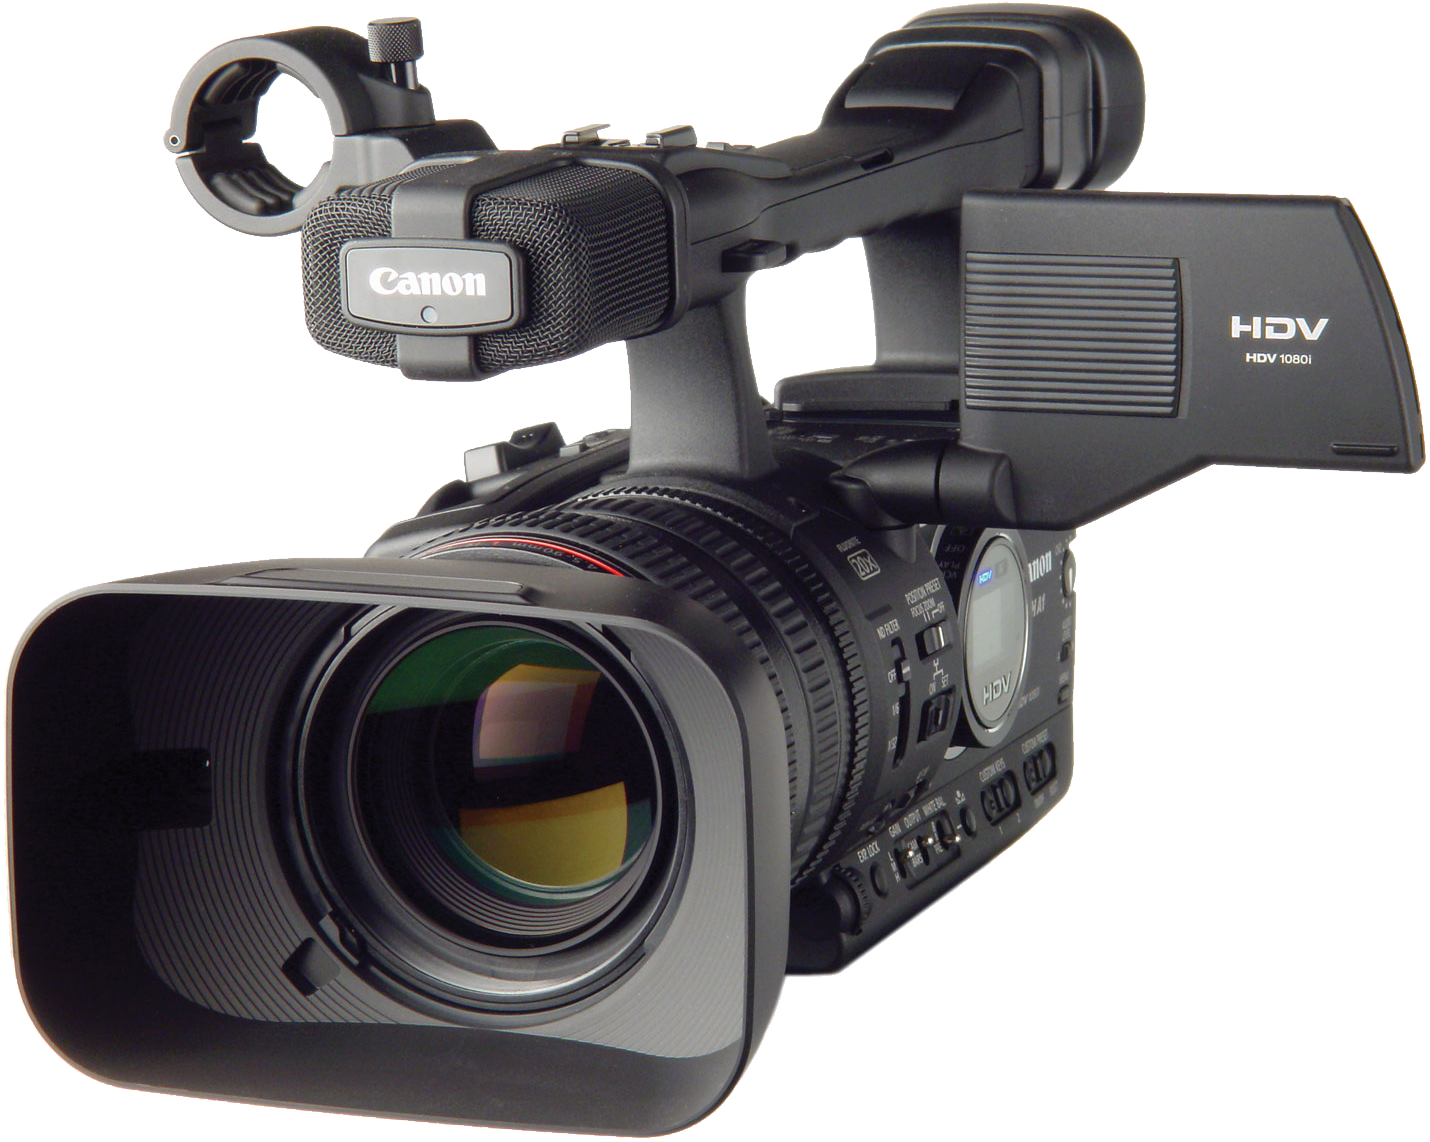 Video camera PNG image - Movie Camera PNG HD